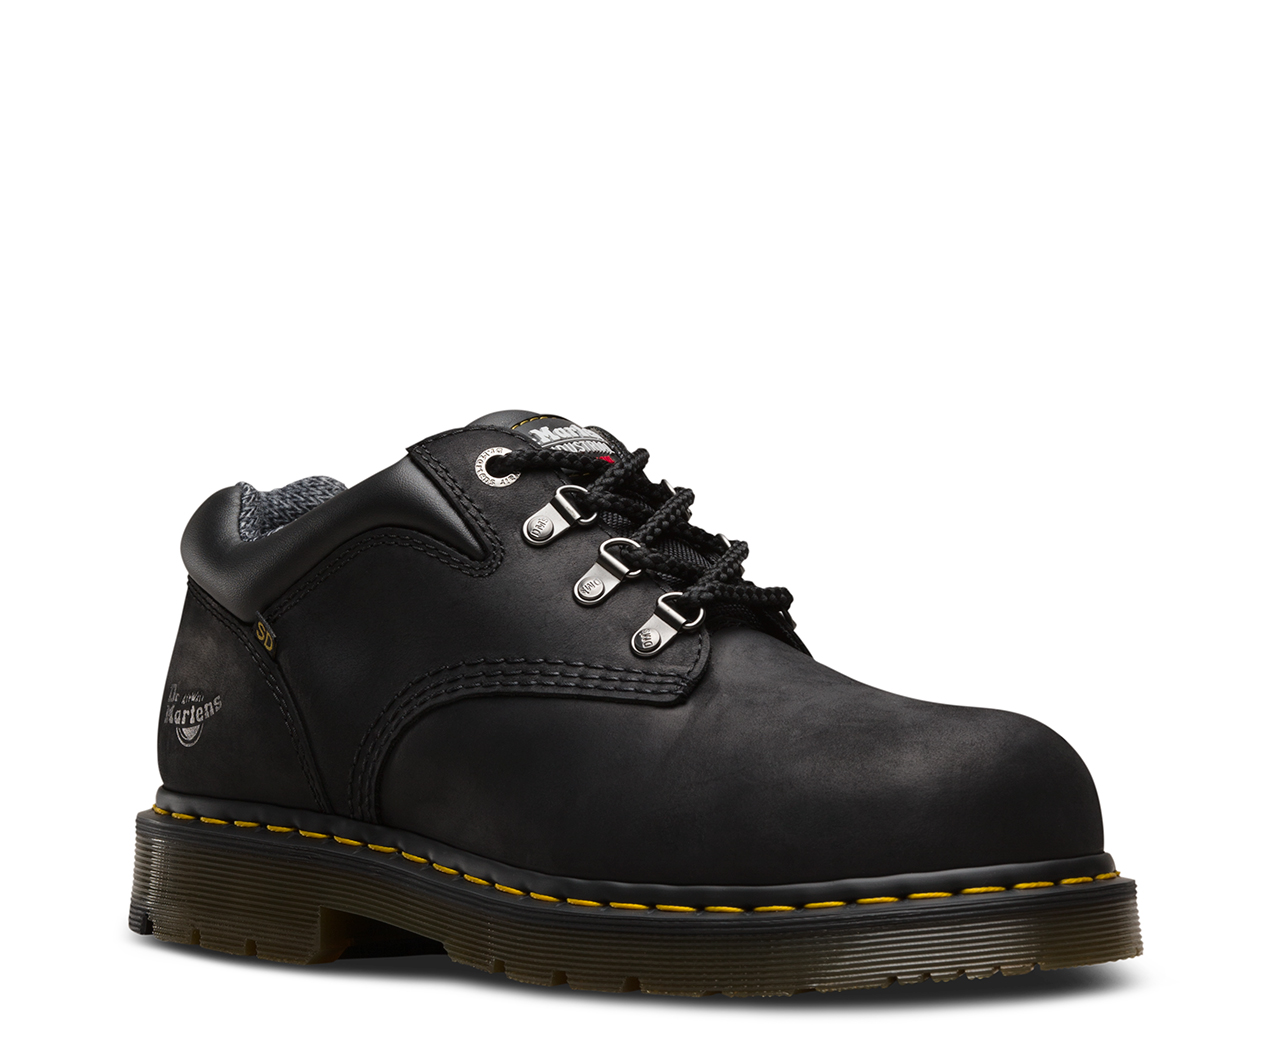 Hylow Work Boots Amp Shoes The Official Us Dr Martens Store